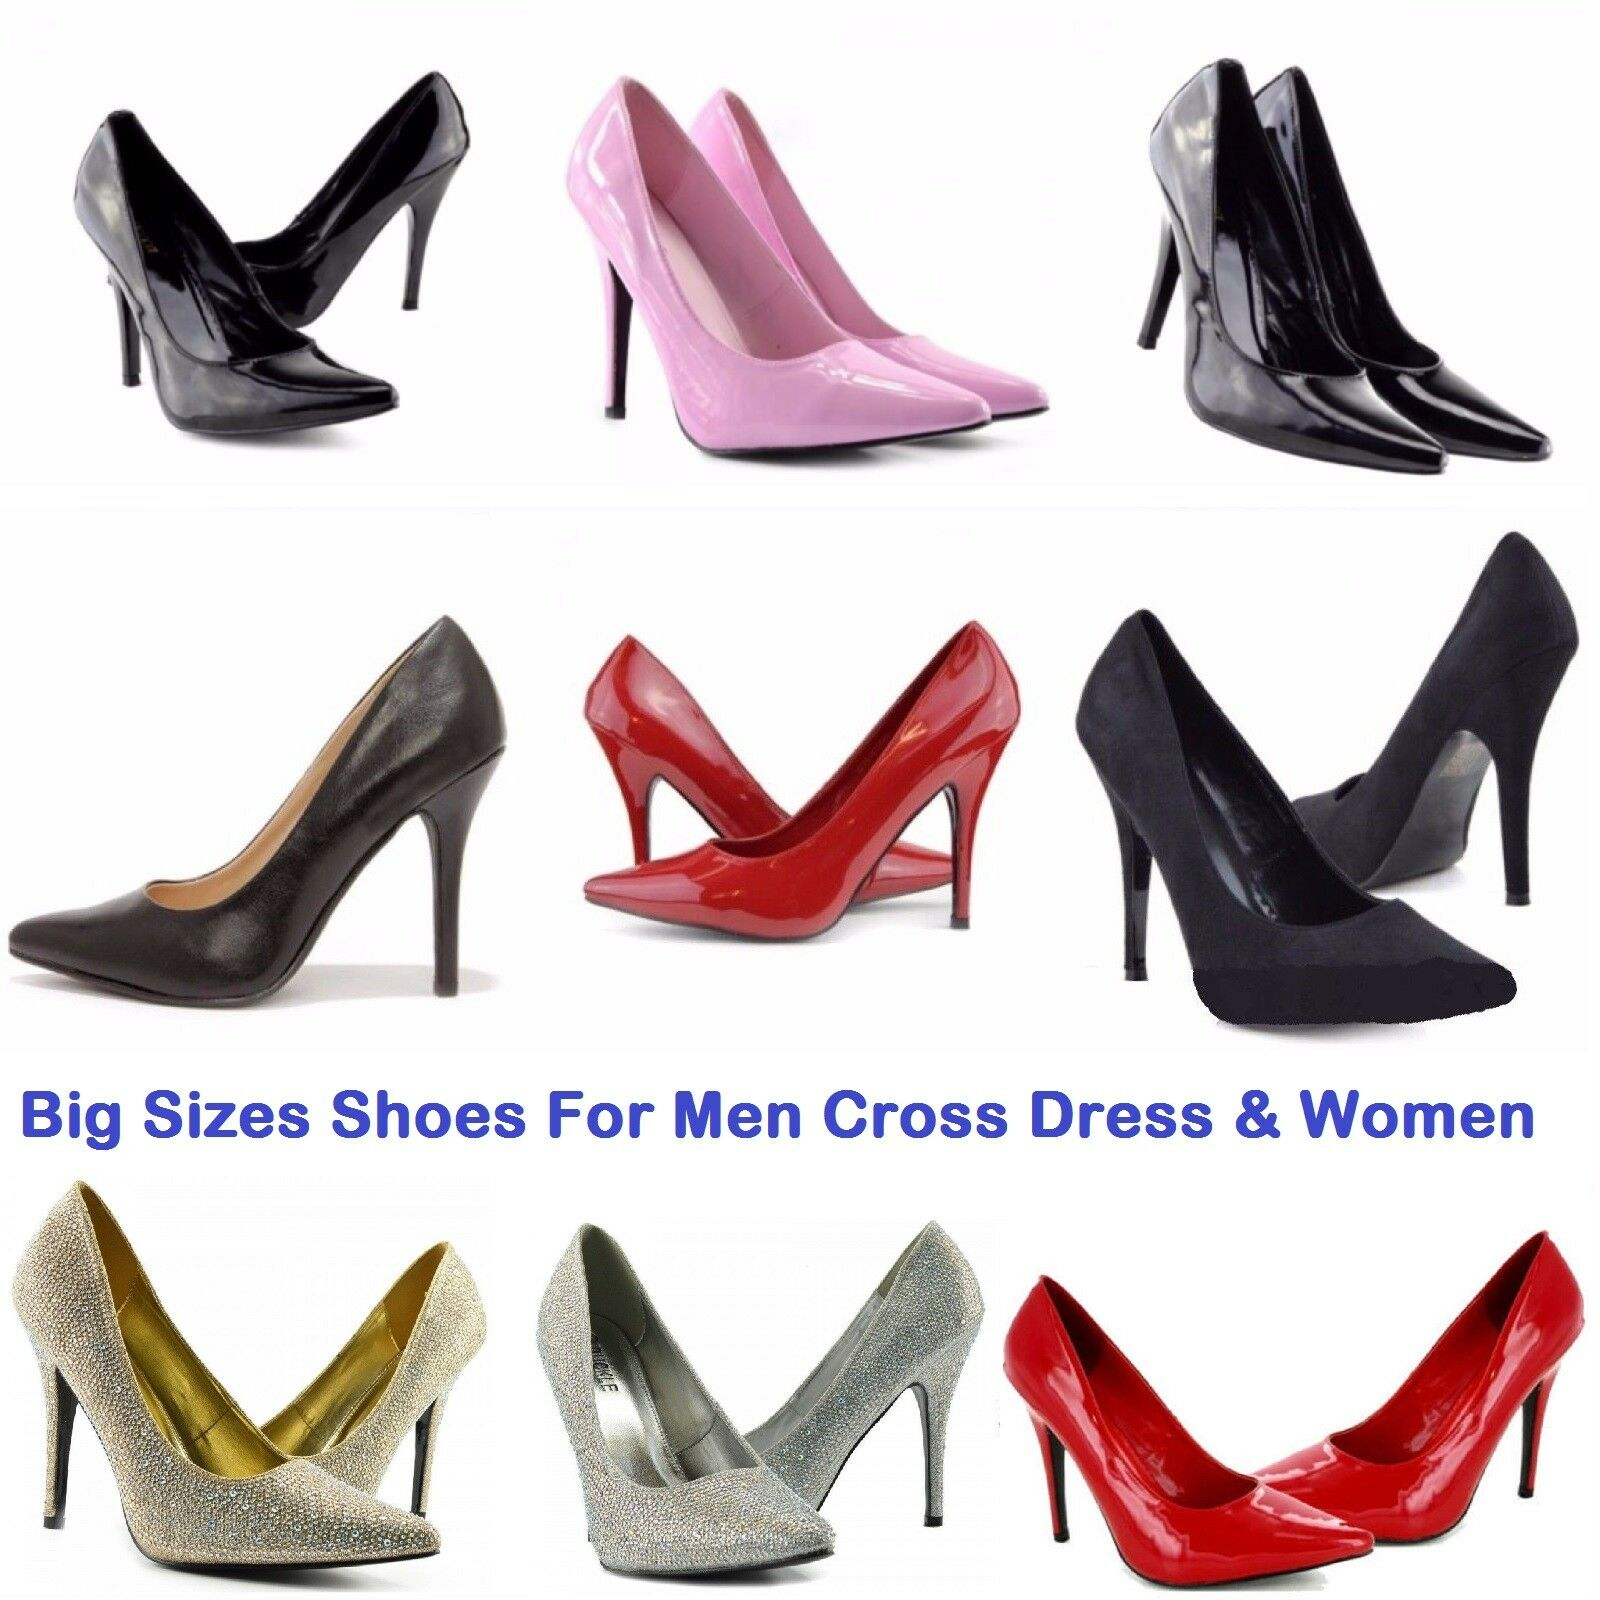 14f0a4f743ed Big Size Cross Dresser Women Drag Queen Patent Leather High Heel Size 9-12  Shoes